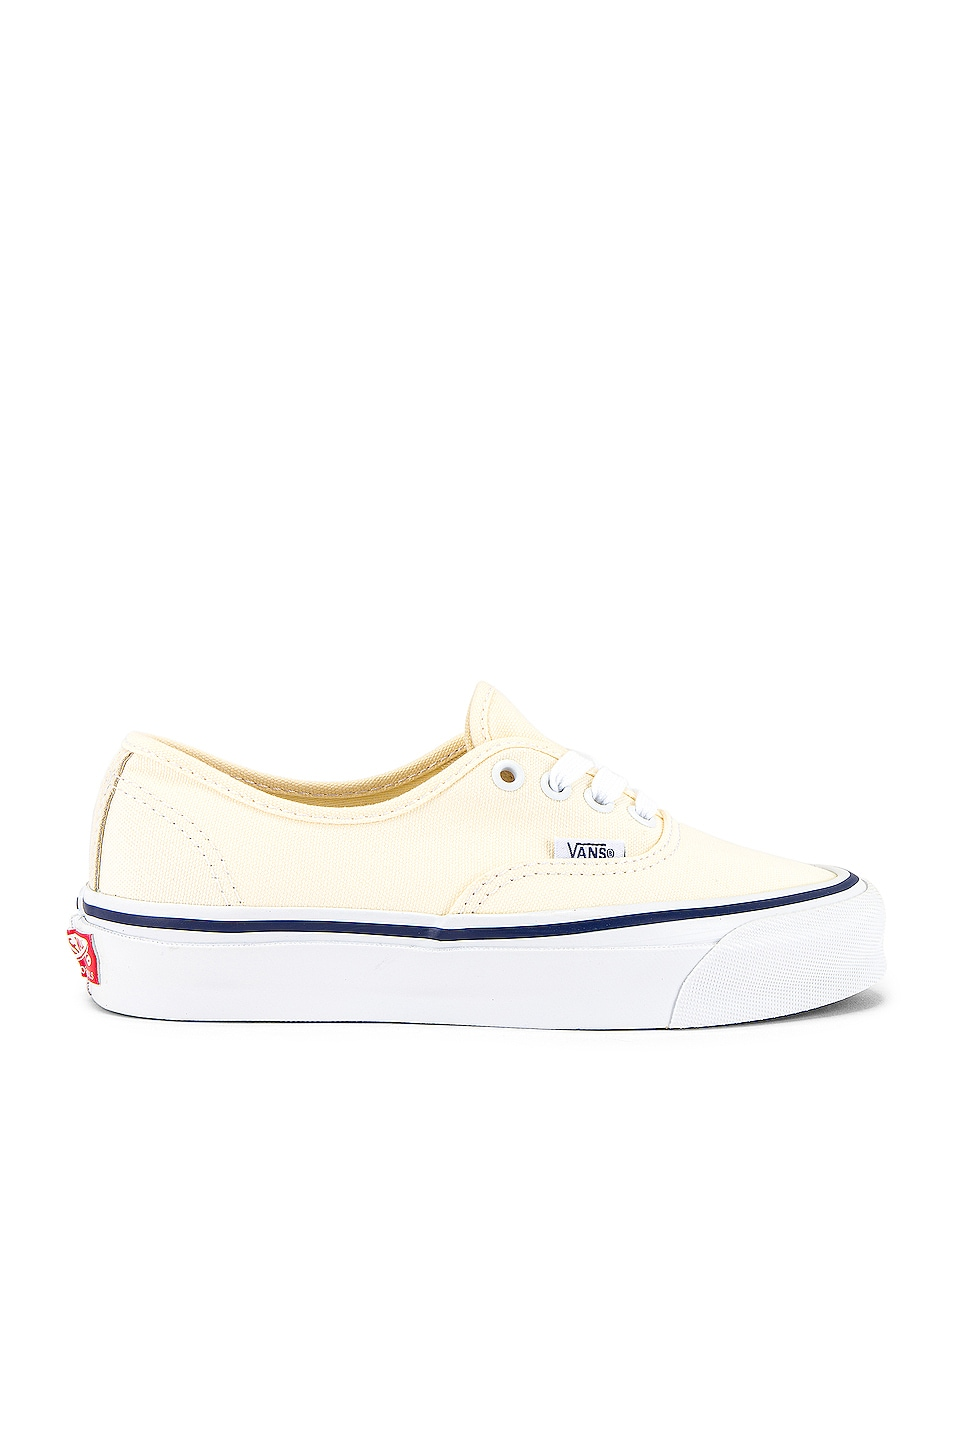 Image 1 of Vans Vault OG Authentic LX in Classic White